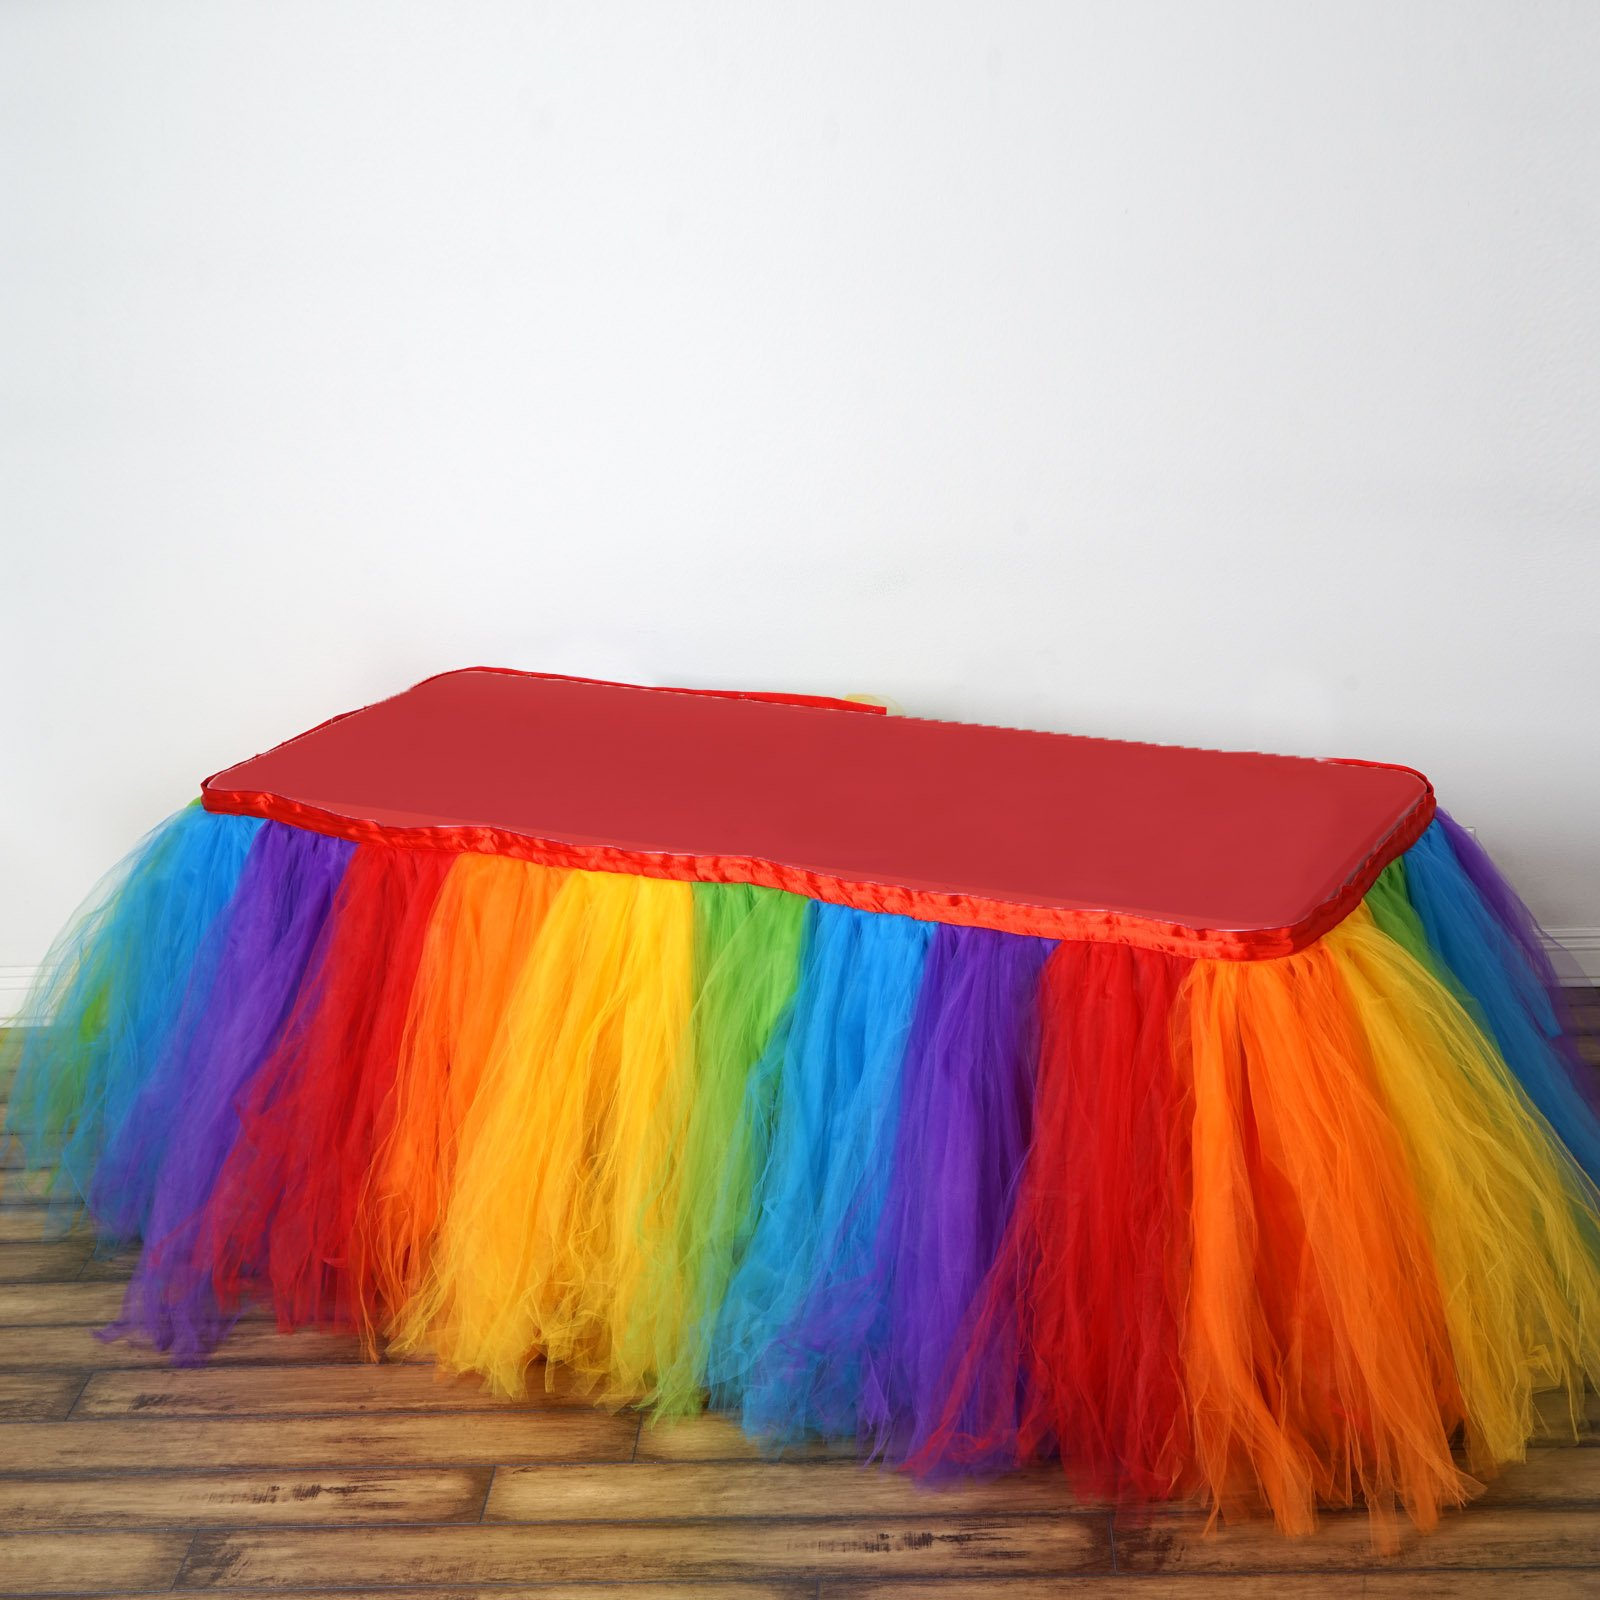 Tableclothsfactory 21ft FULL SIZE 8 Layer Fluffy Tulle - Tutu Table Skirt - Rainbow